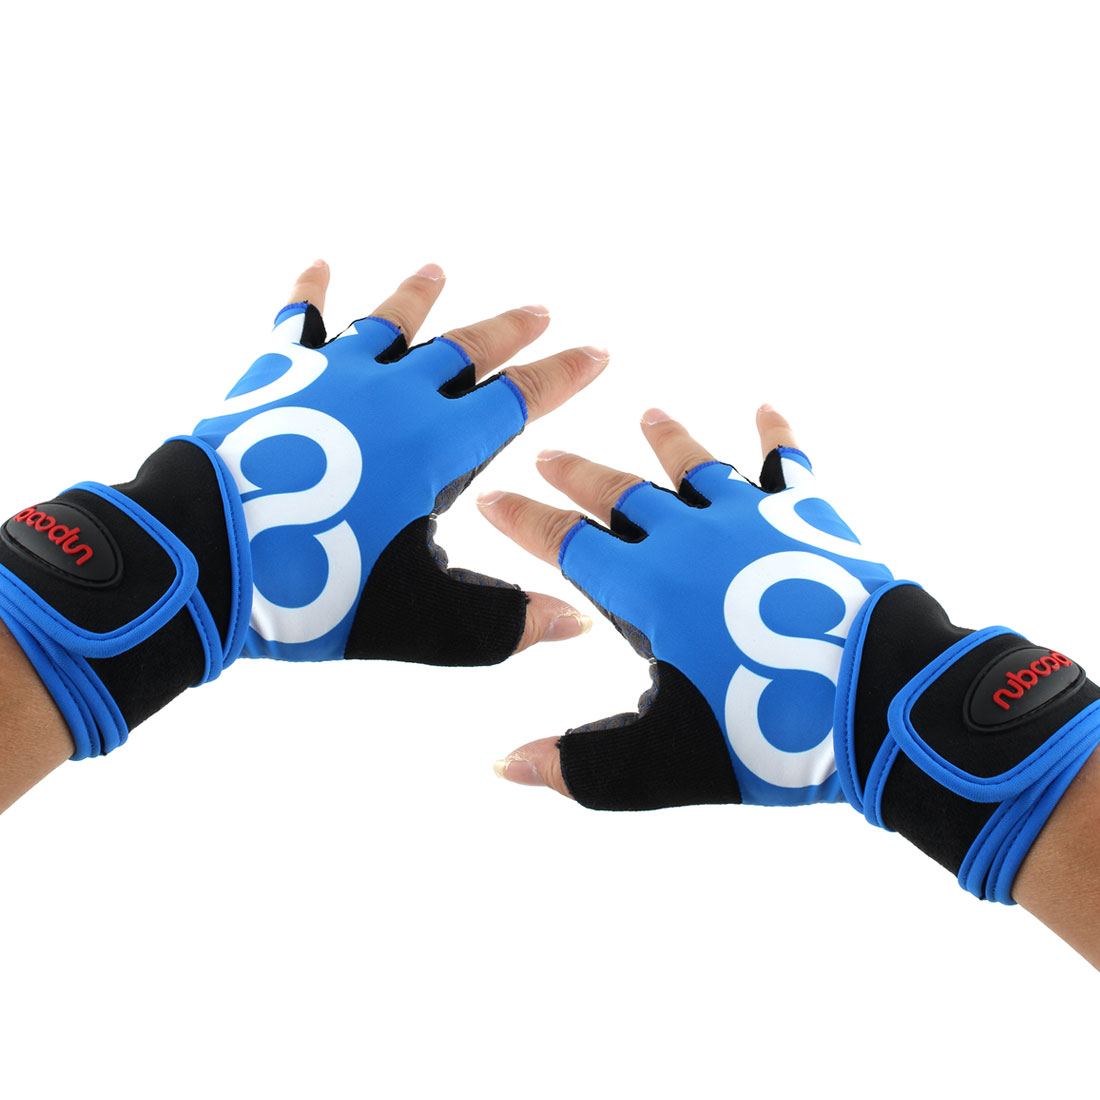 Men Polyester Exercise Sports Weightlifting Training Workout Half Finger Fitness Gloves Blue M Pair